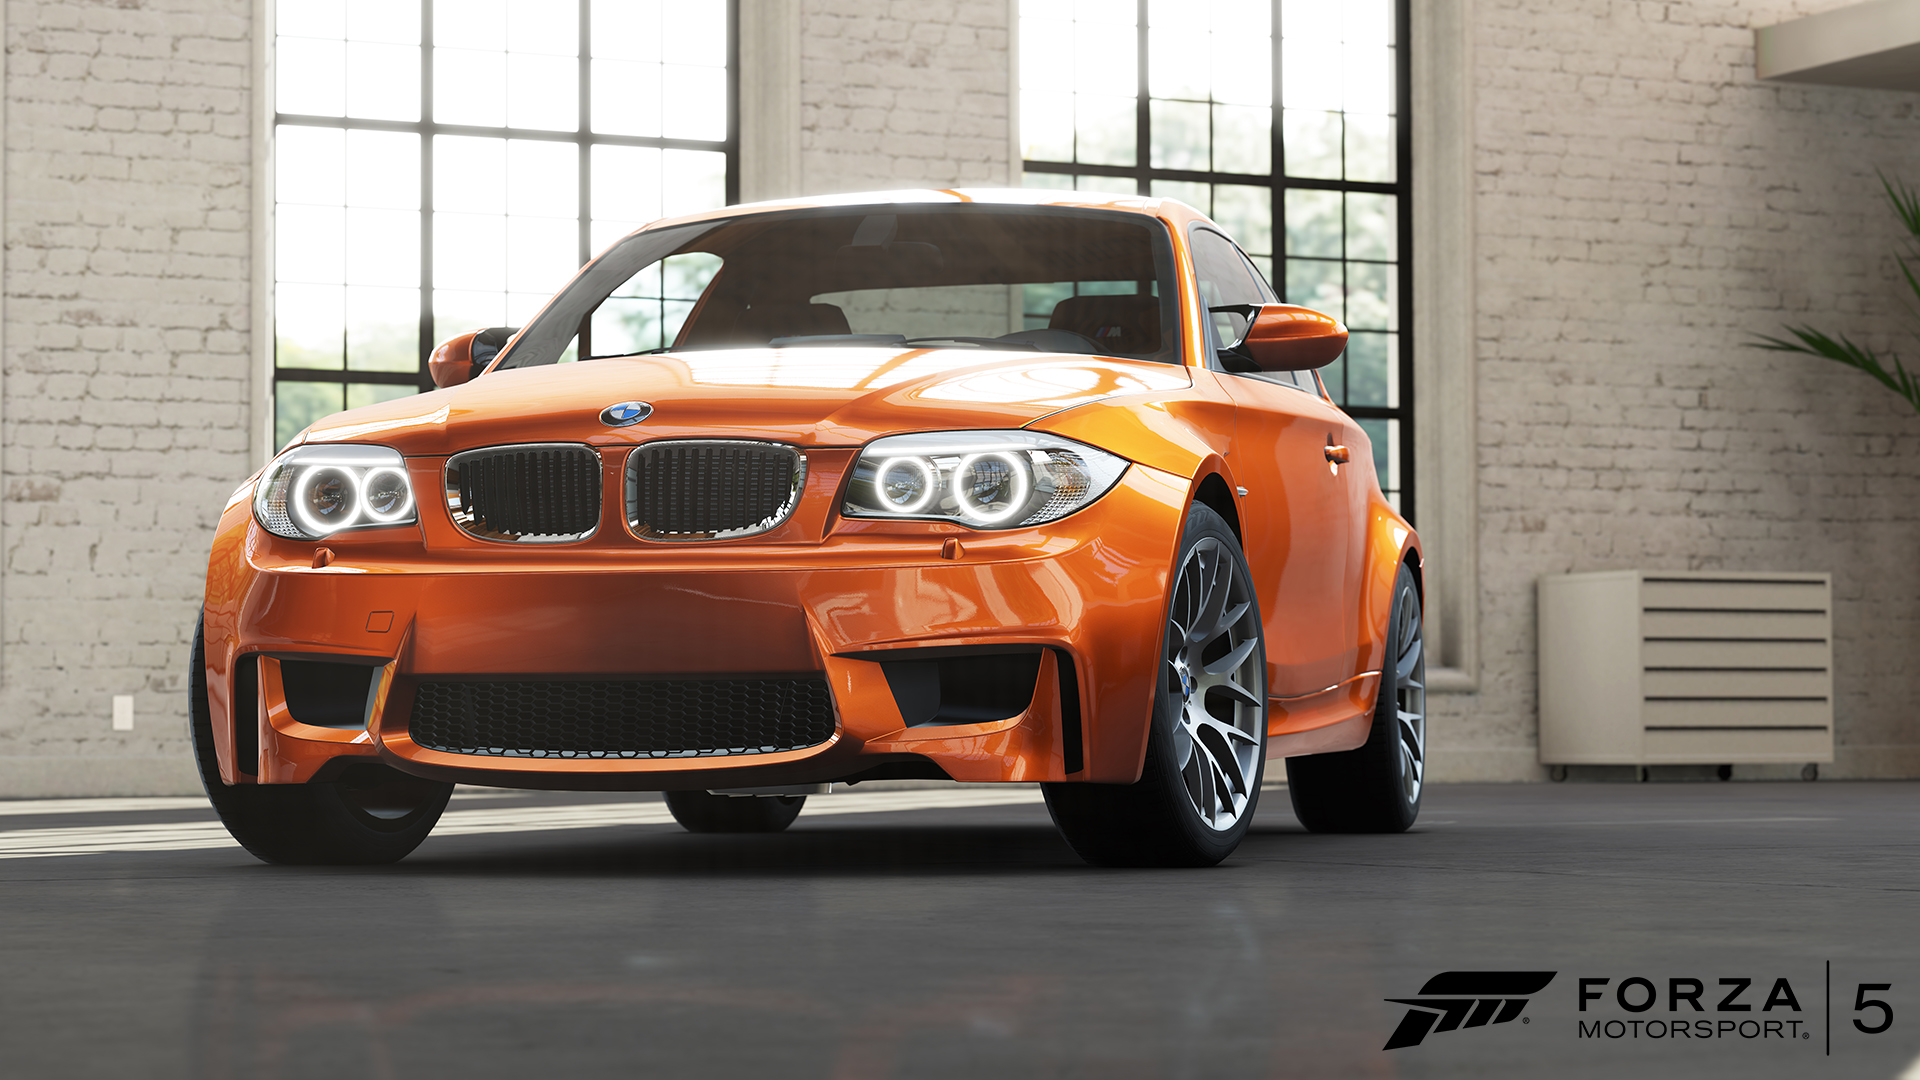 Forza 5 Car List Grows To 118 Vehicles 22 New Models